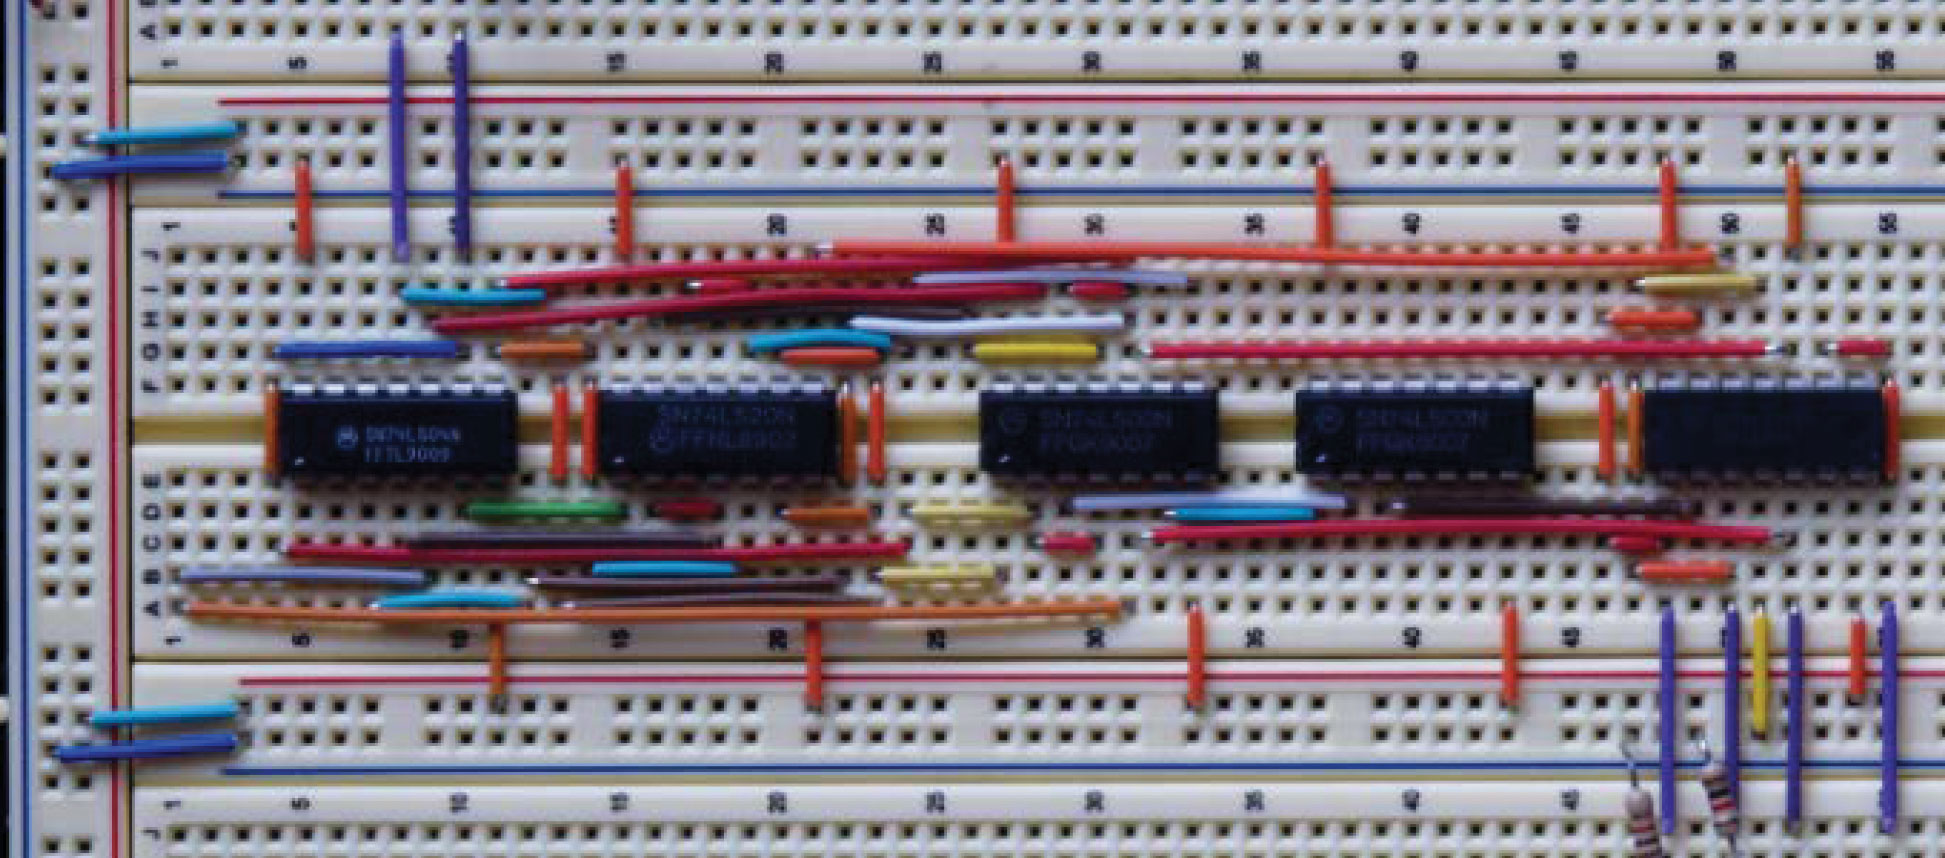 If You Implement This Circuit In Your Vehicle Circuit Dijagram